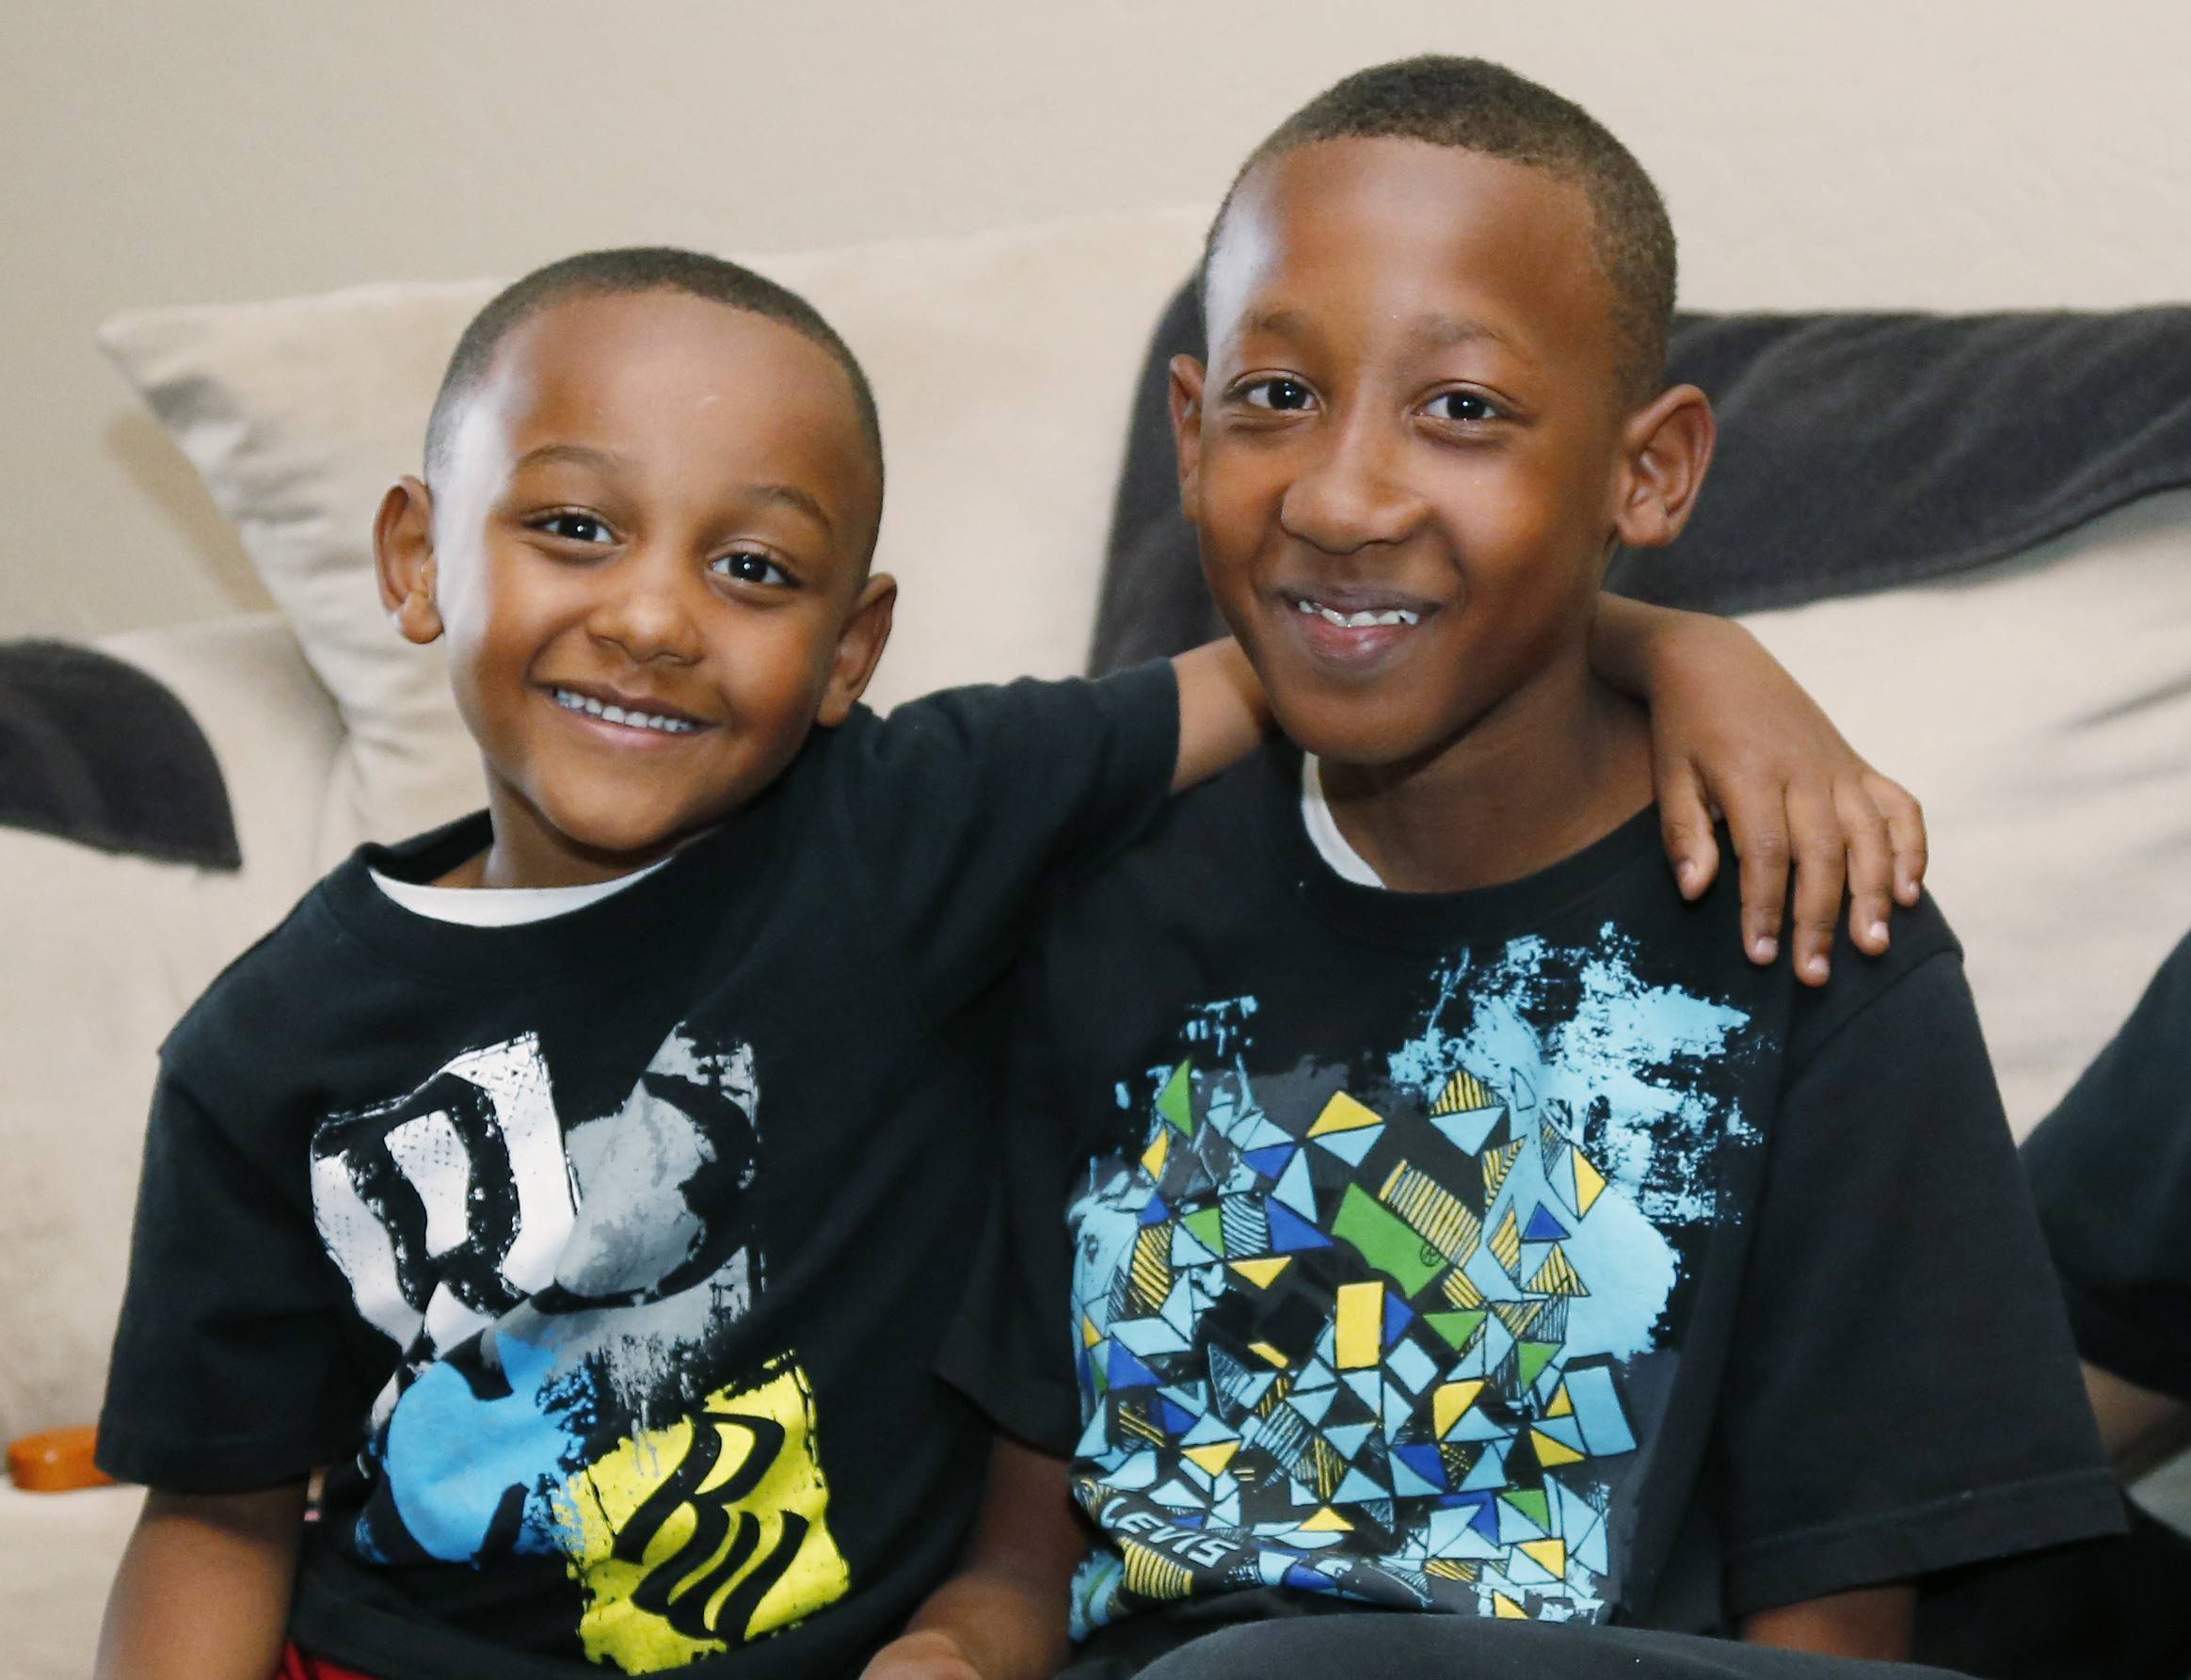 Anthony Richardson, left, 4, hugs his big brother, Cam'ron Richardson, right, at their home in Oklahoma City, Friday, May 16, 2014. Cam'ron was one of the third-grade students at Plaza Towers Elementary school who was trapped under a collapsed wall at the school following the May 20, 2013 tornado.